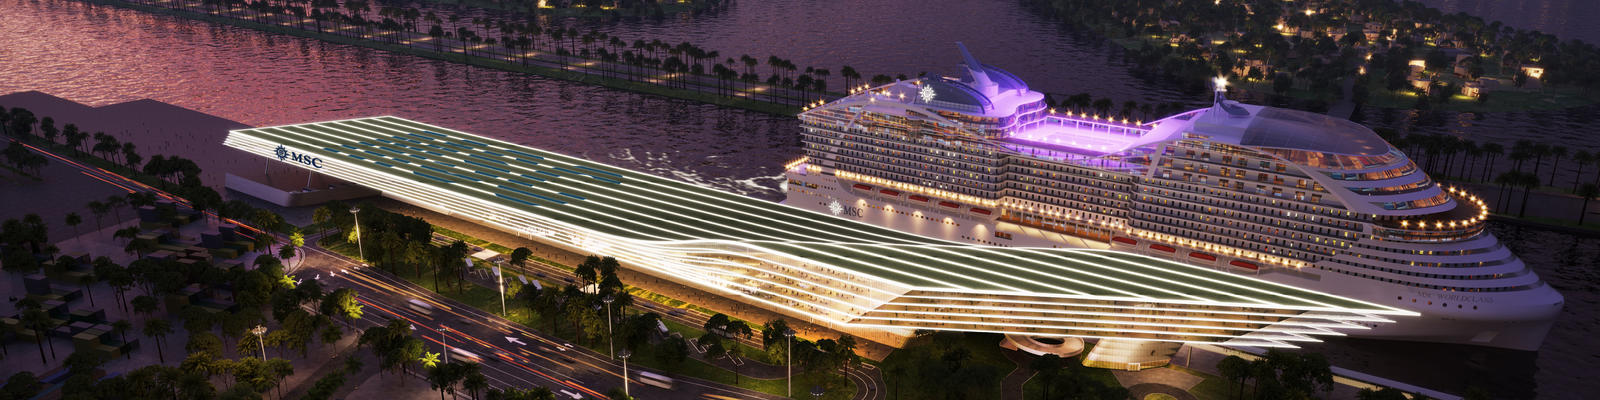 msc-cruises-reveals-details-of-new-multi-ship-terminal-at-miami-cruise-port_x400_41